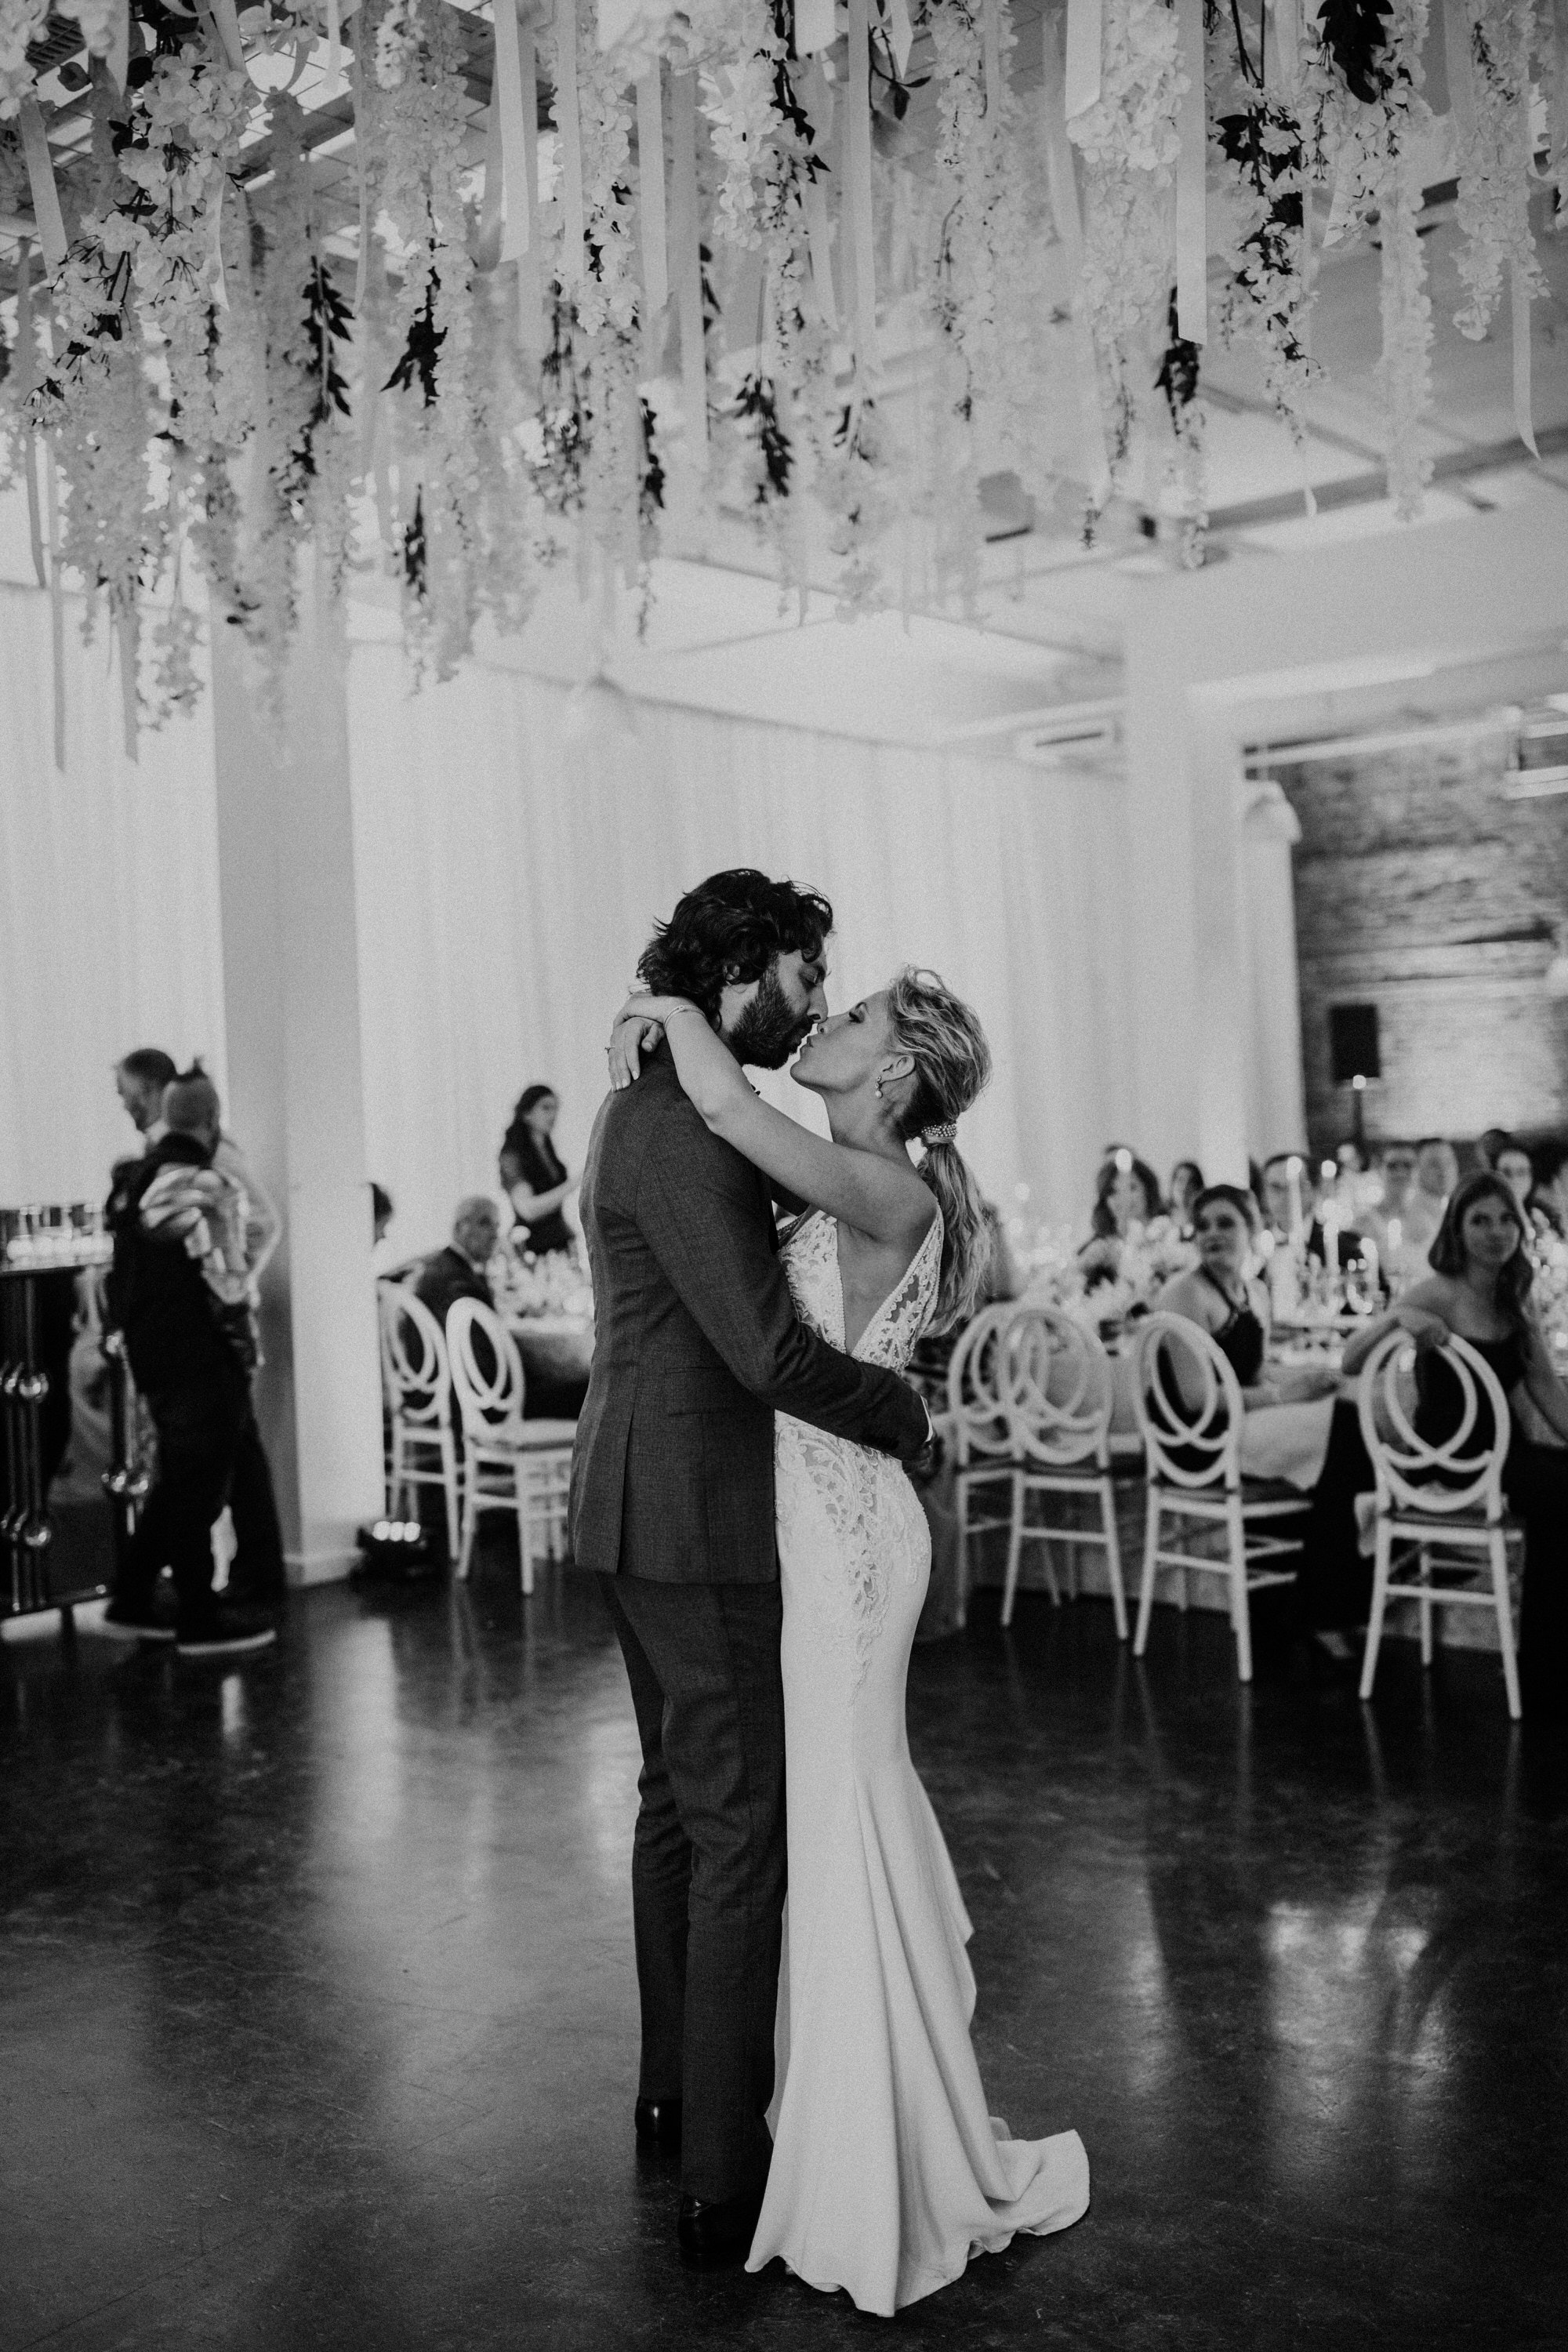 Entrepots Dominion Wedding In Montreal - First Dance Kisses - Wedding Photographer Brent Calis